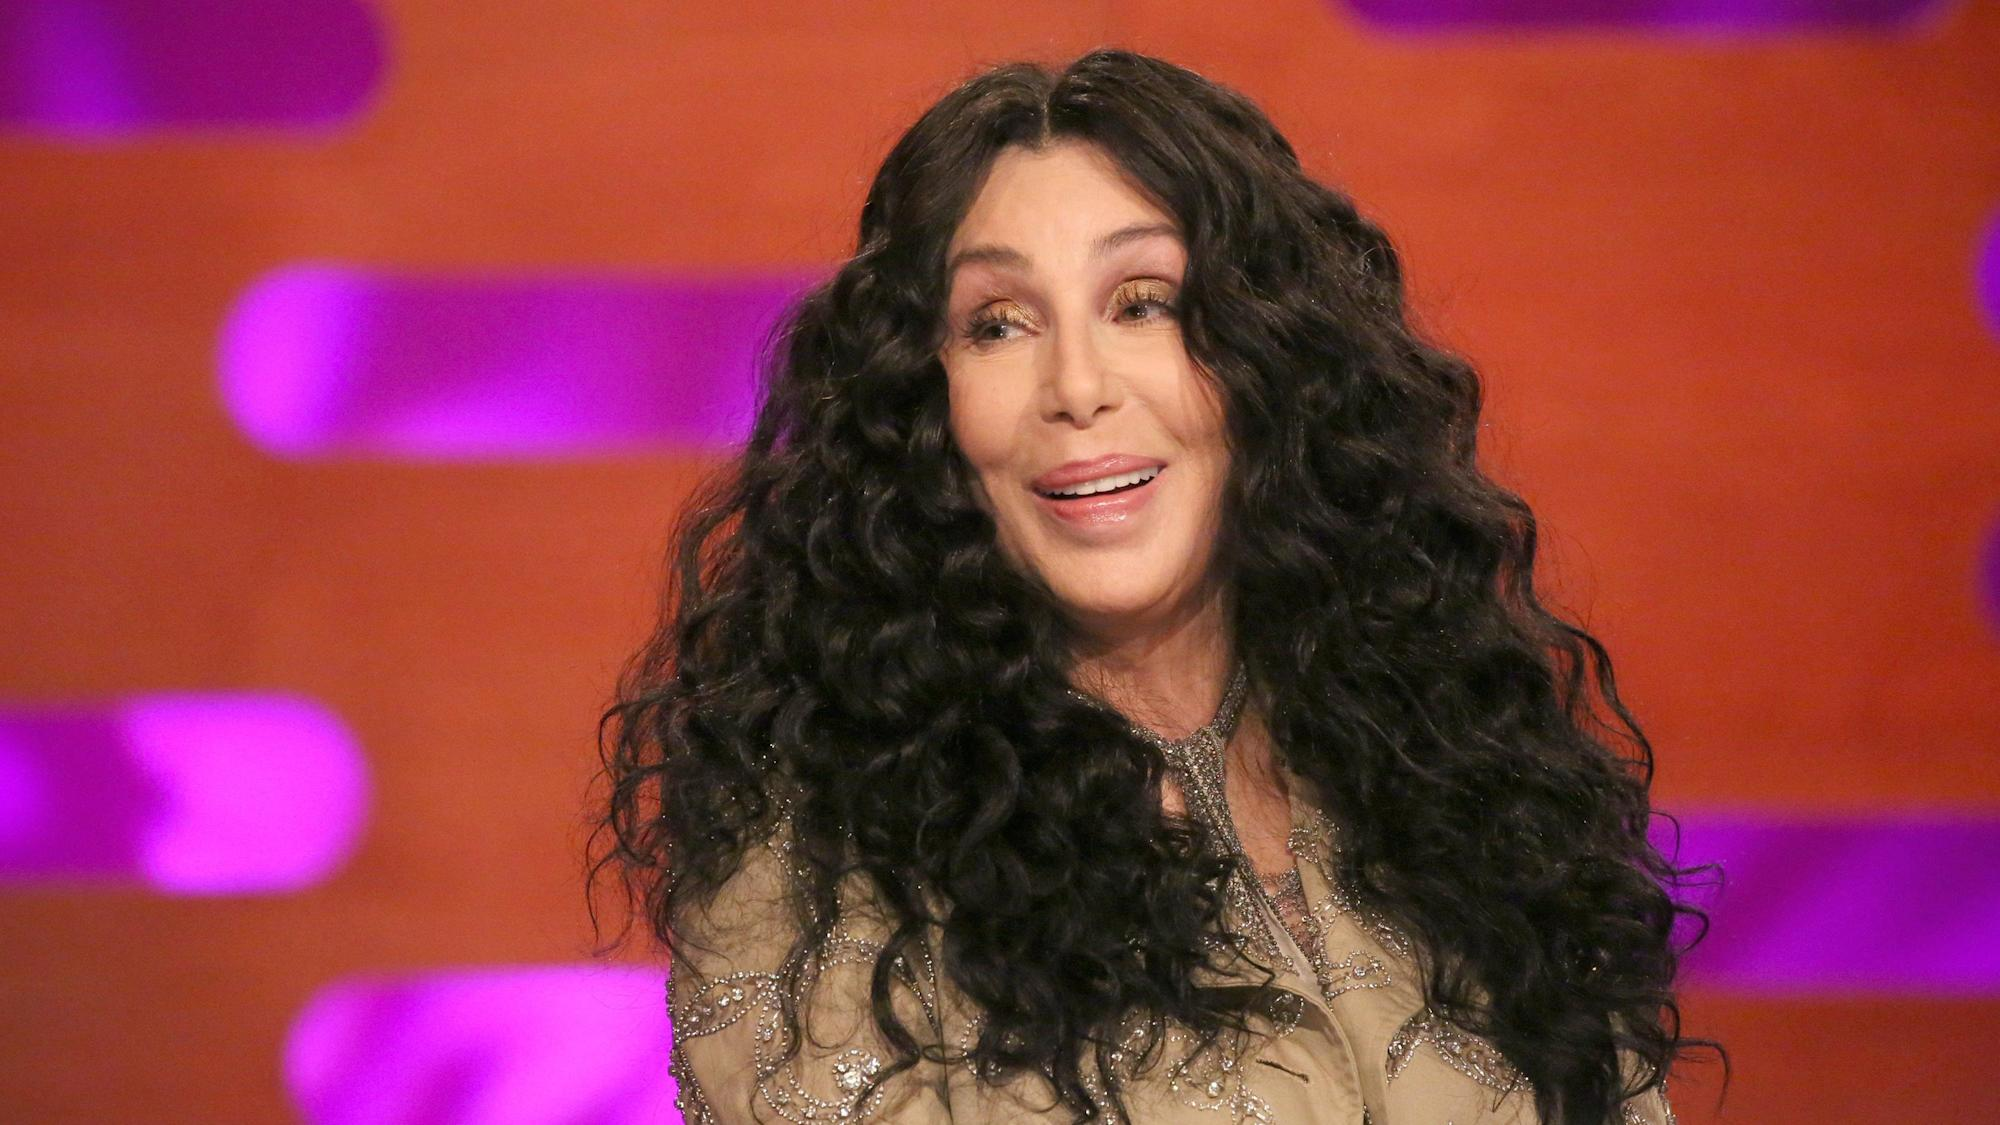 Cher says a man tried to kill her as she made her way into Broadway theatre